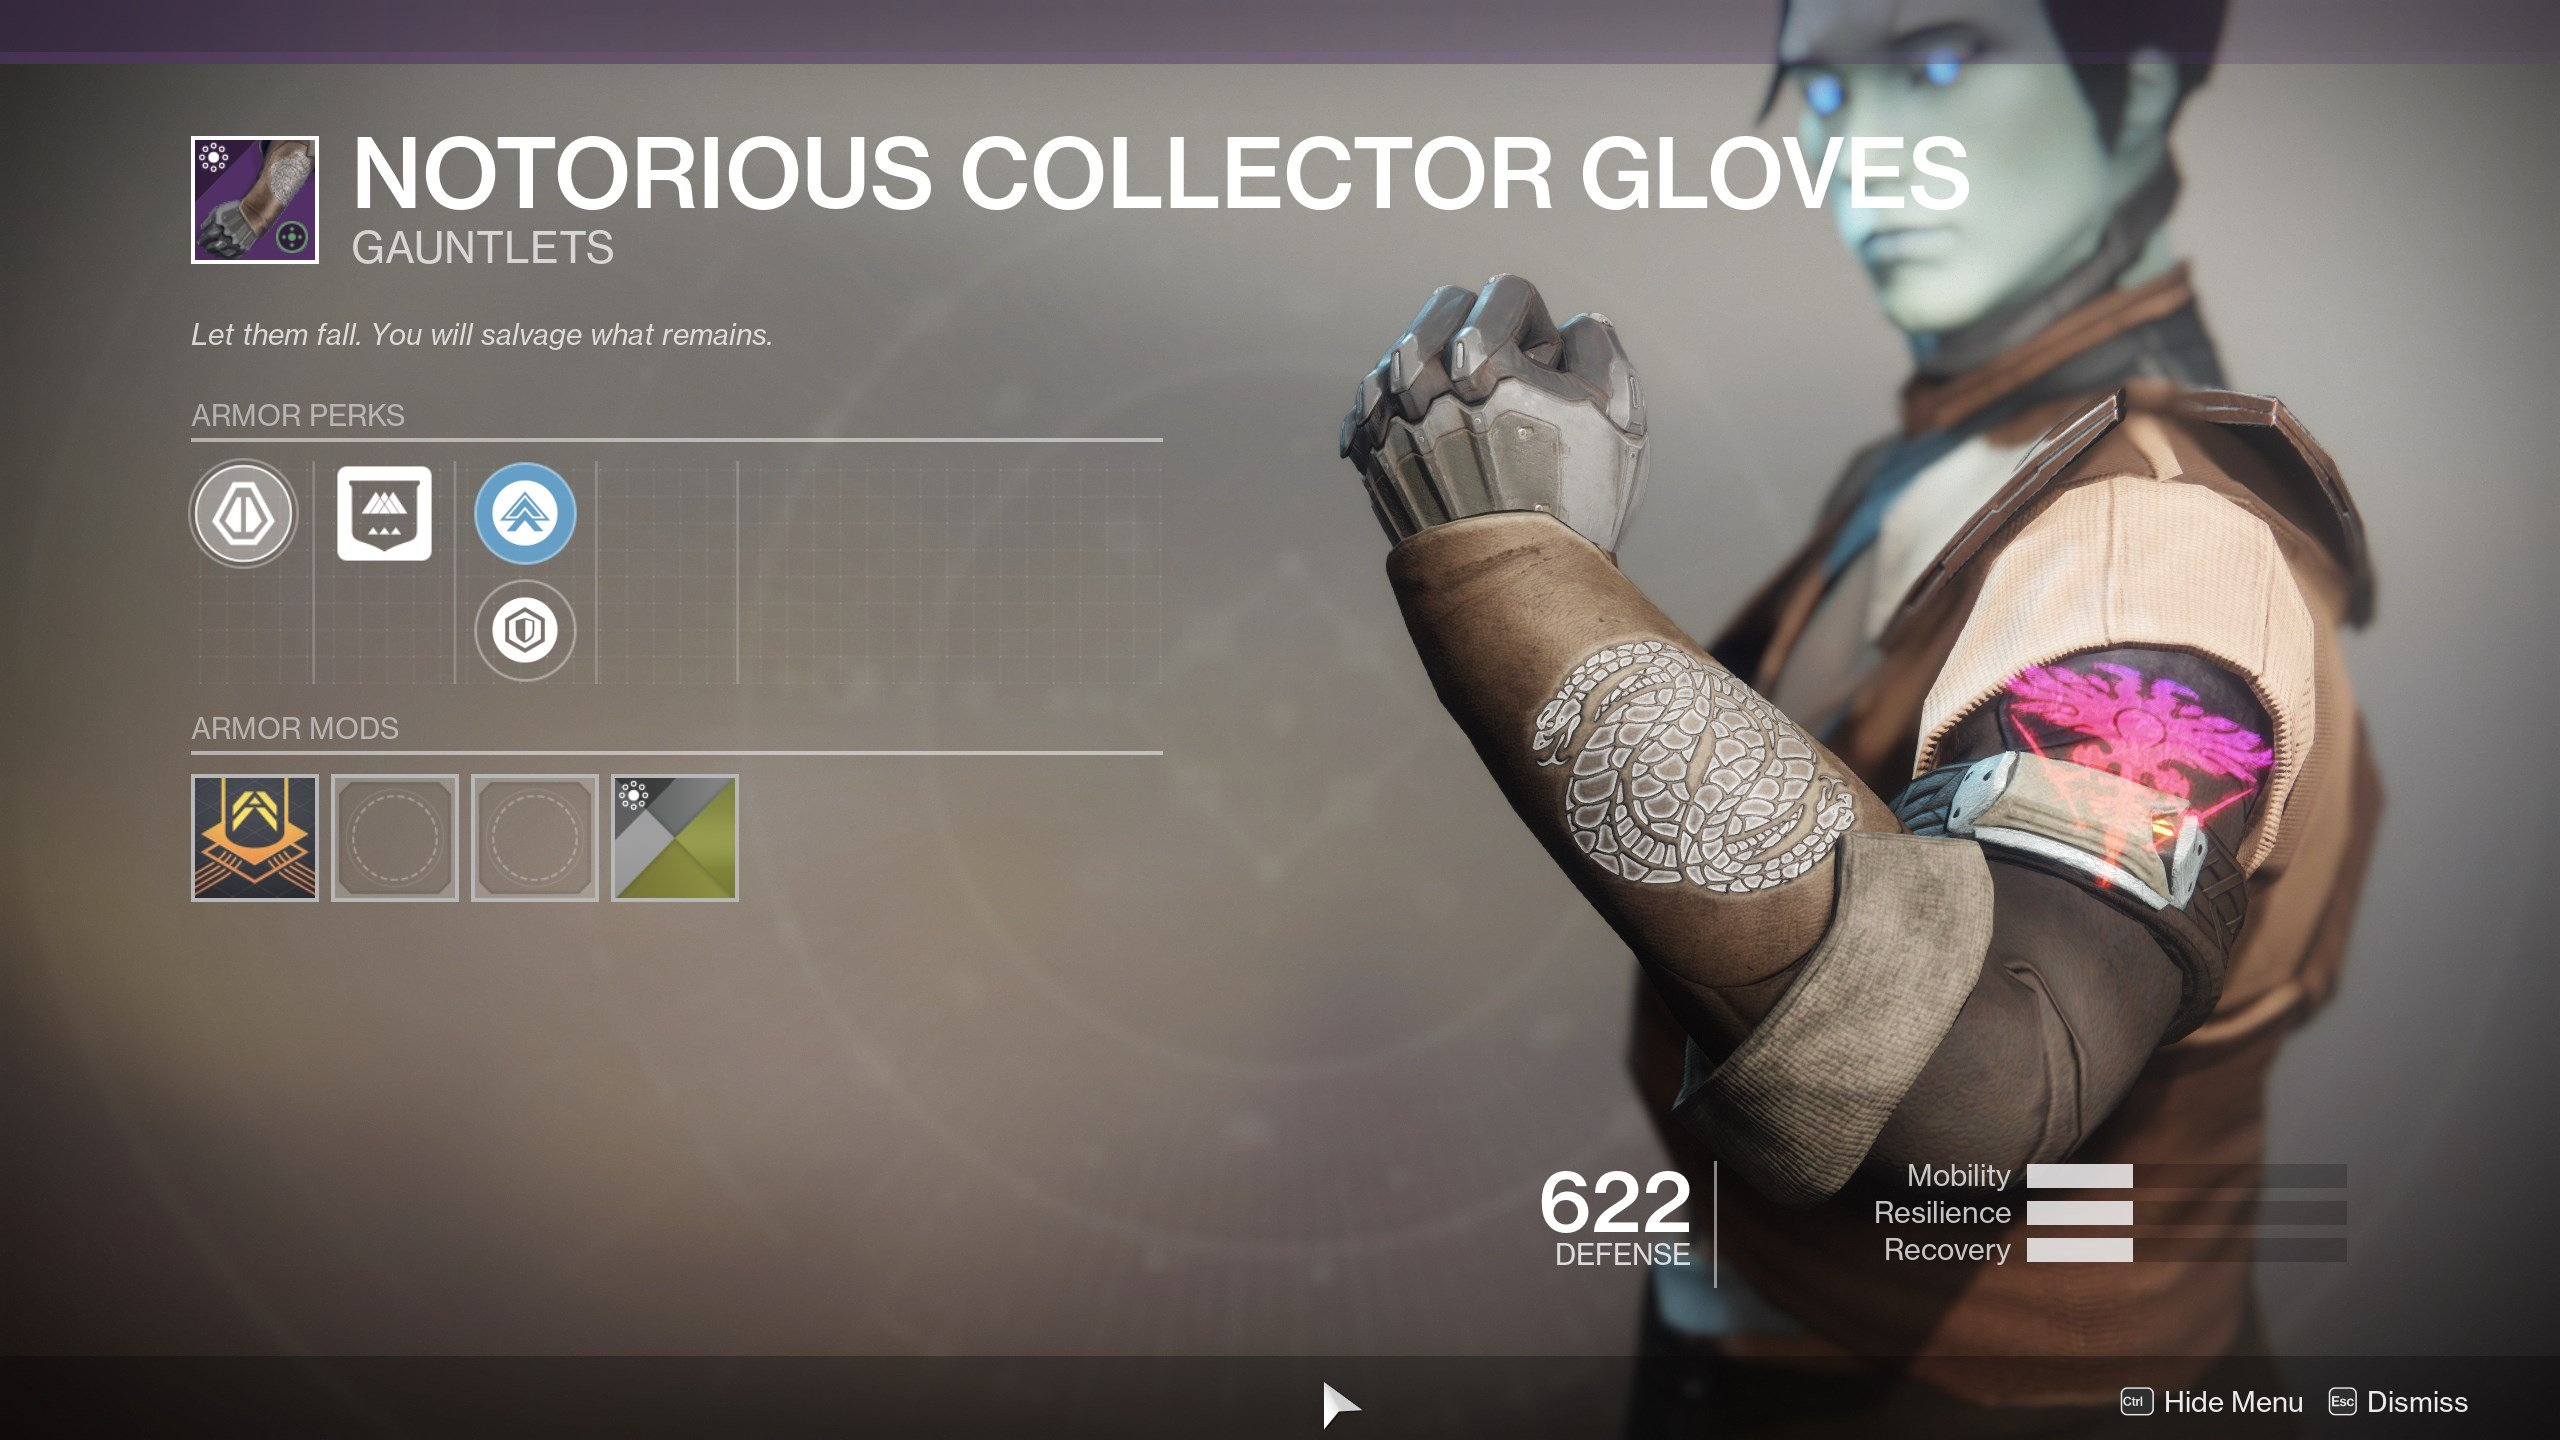 Destiny 2 Notorious Collector Gloves